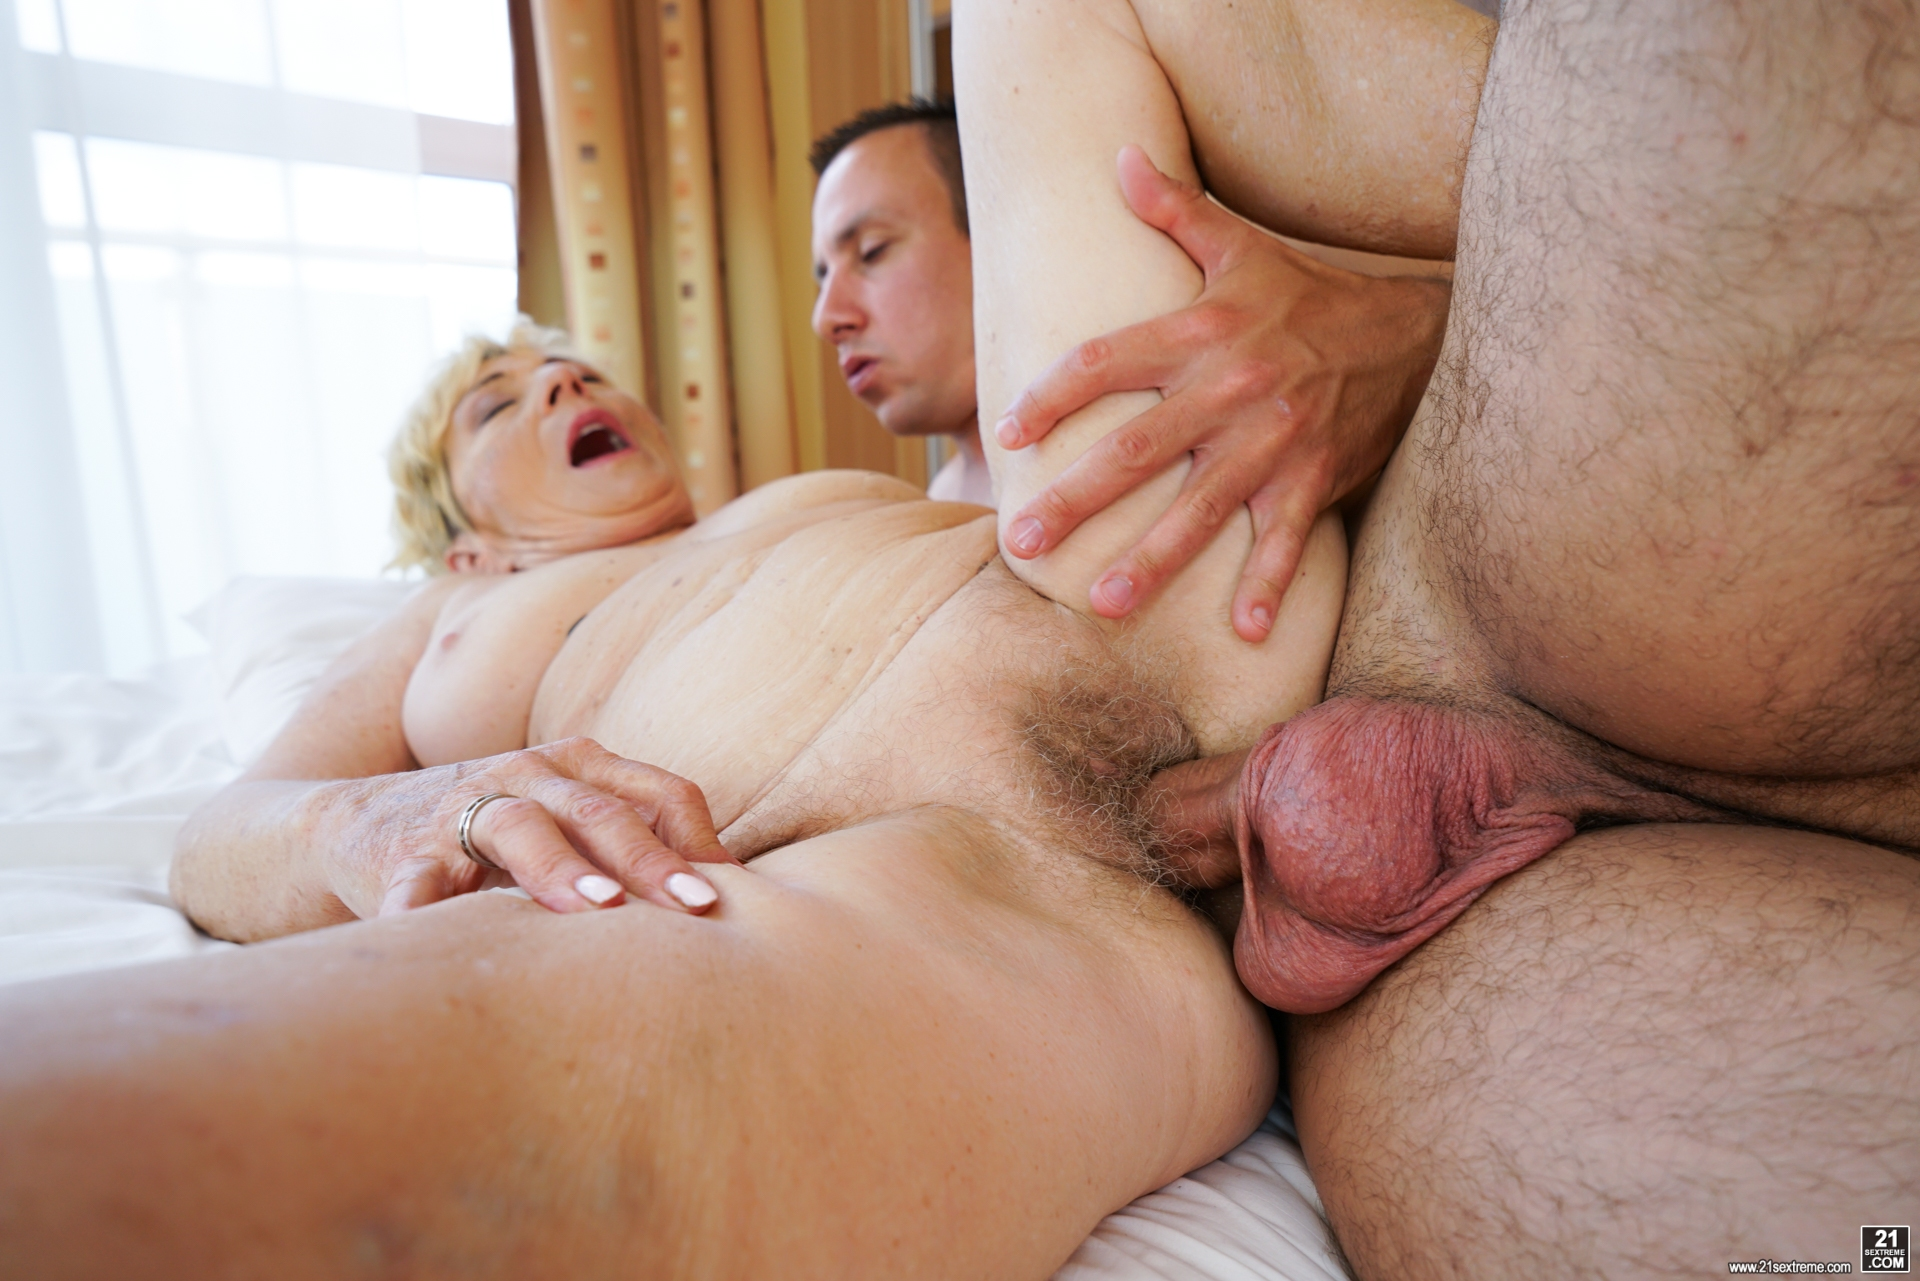 Granny Malya is intensive enjoying seeing her  vintage pussy fucked by Rob's young hard stick #1